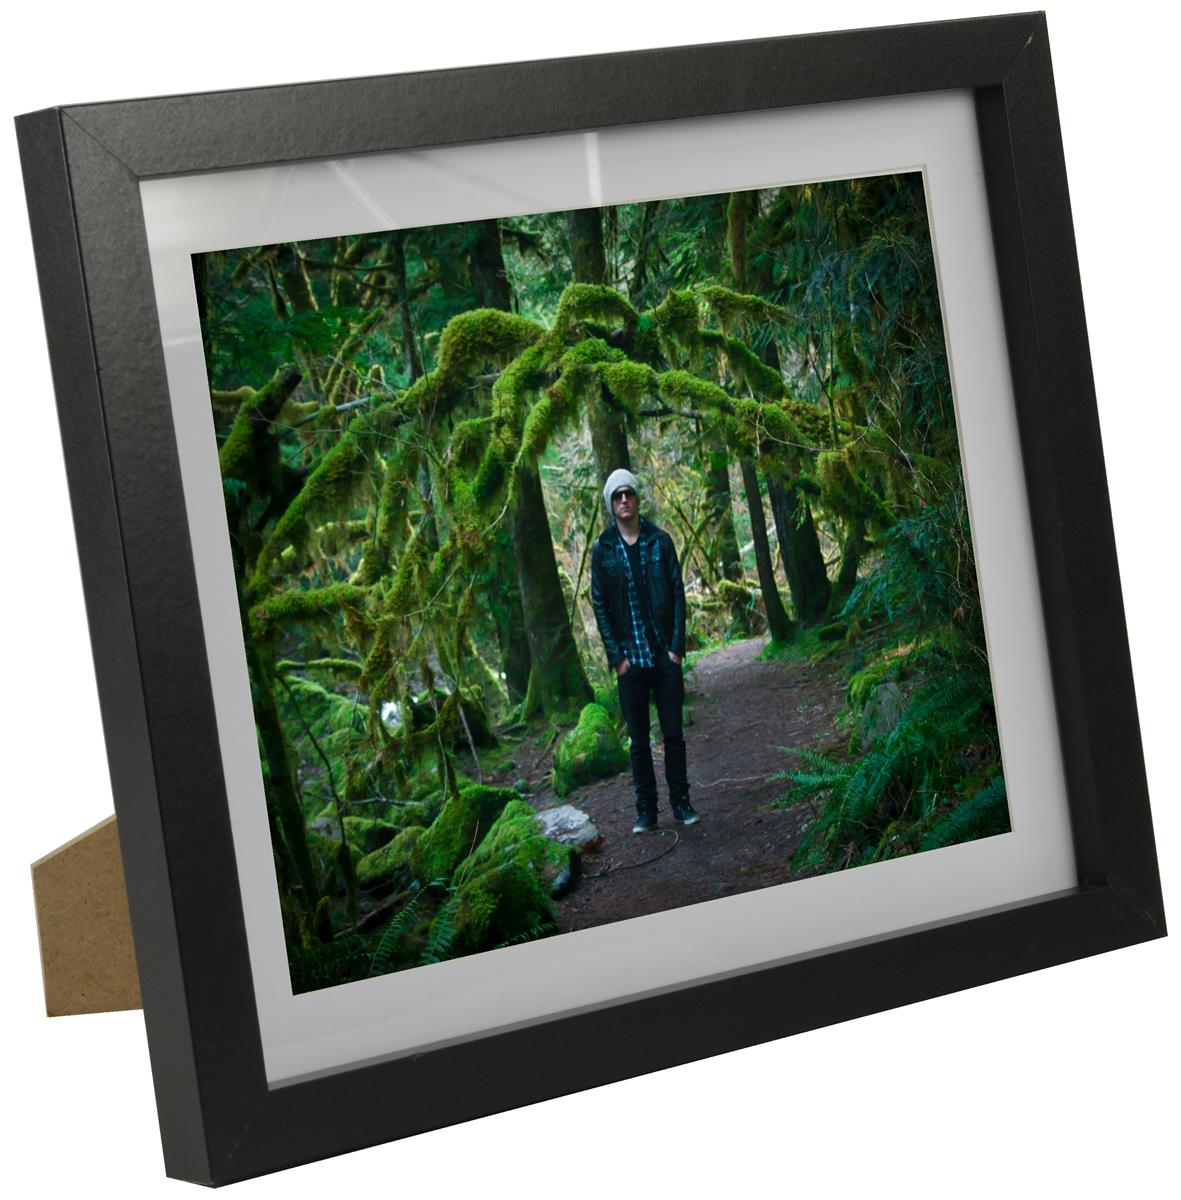 Black Photo Display Frame 8x10 With Pre Cut Matboard